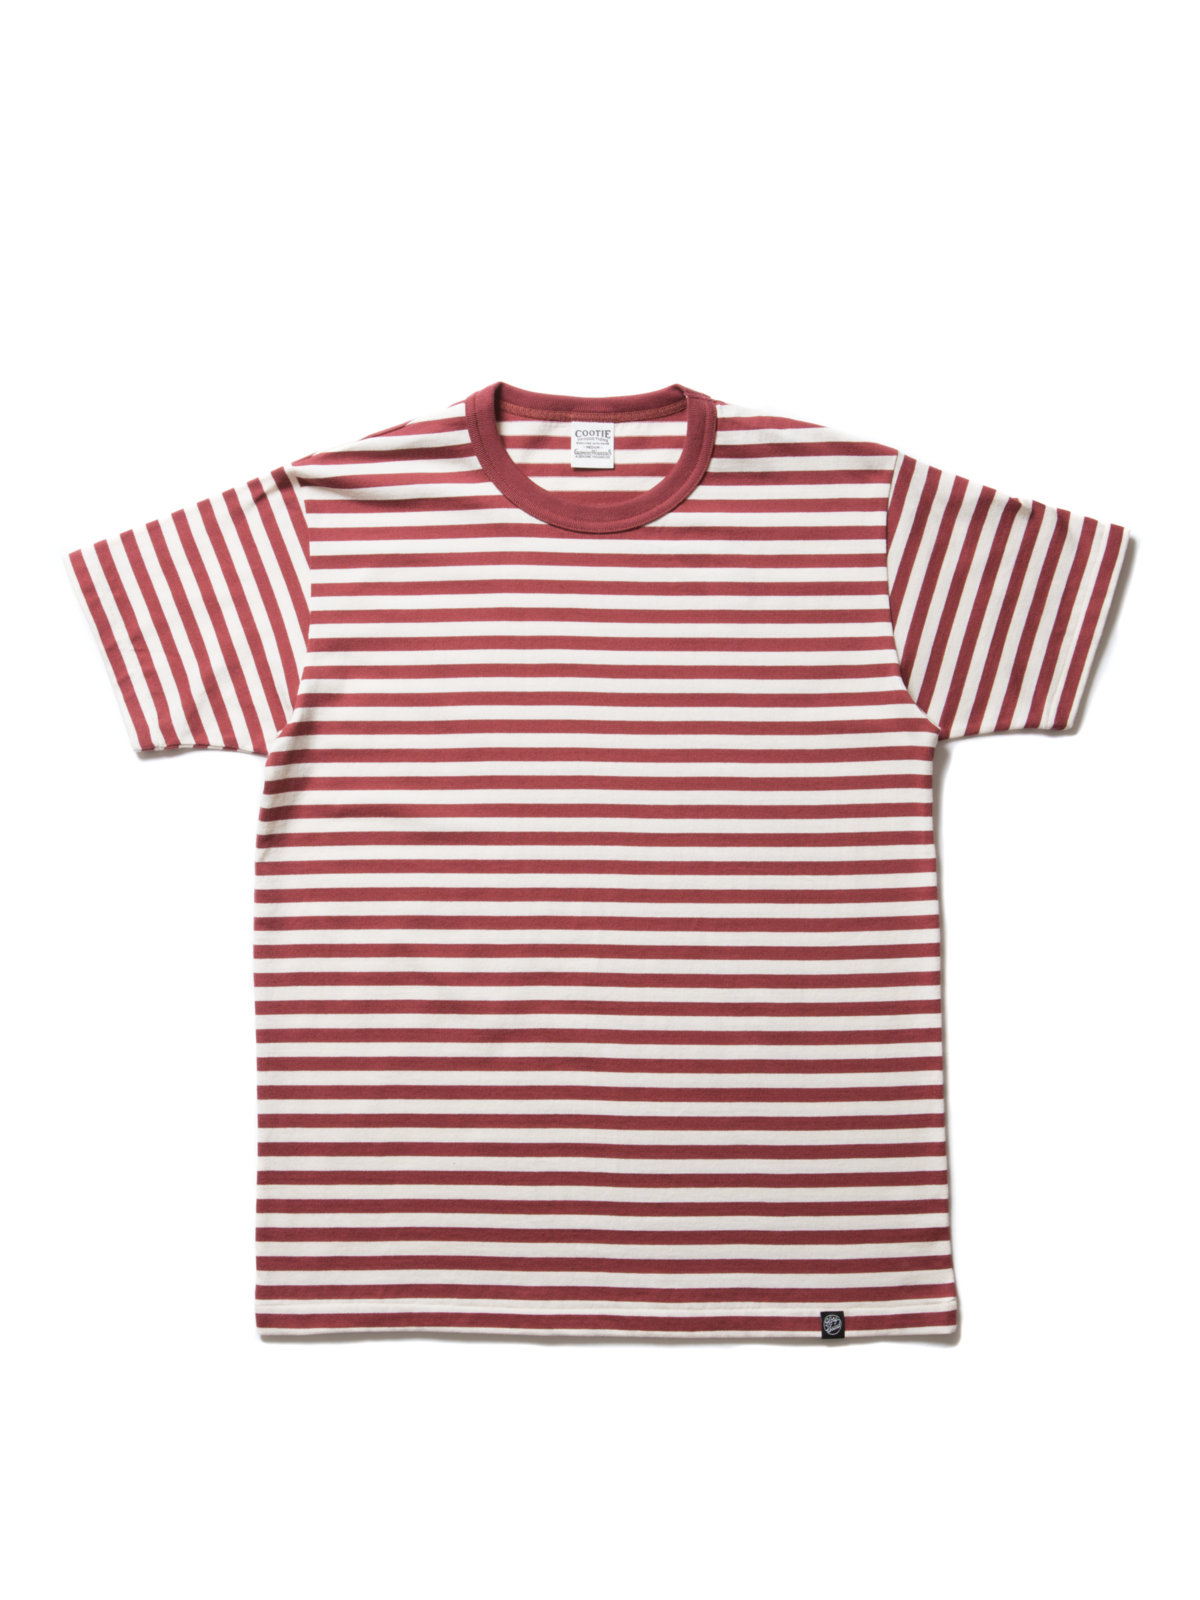 Solid Border S/S Tee-Off White Red-